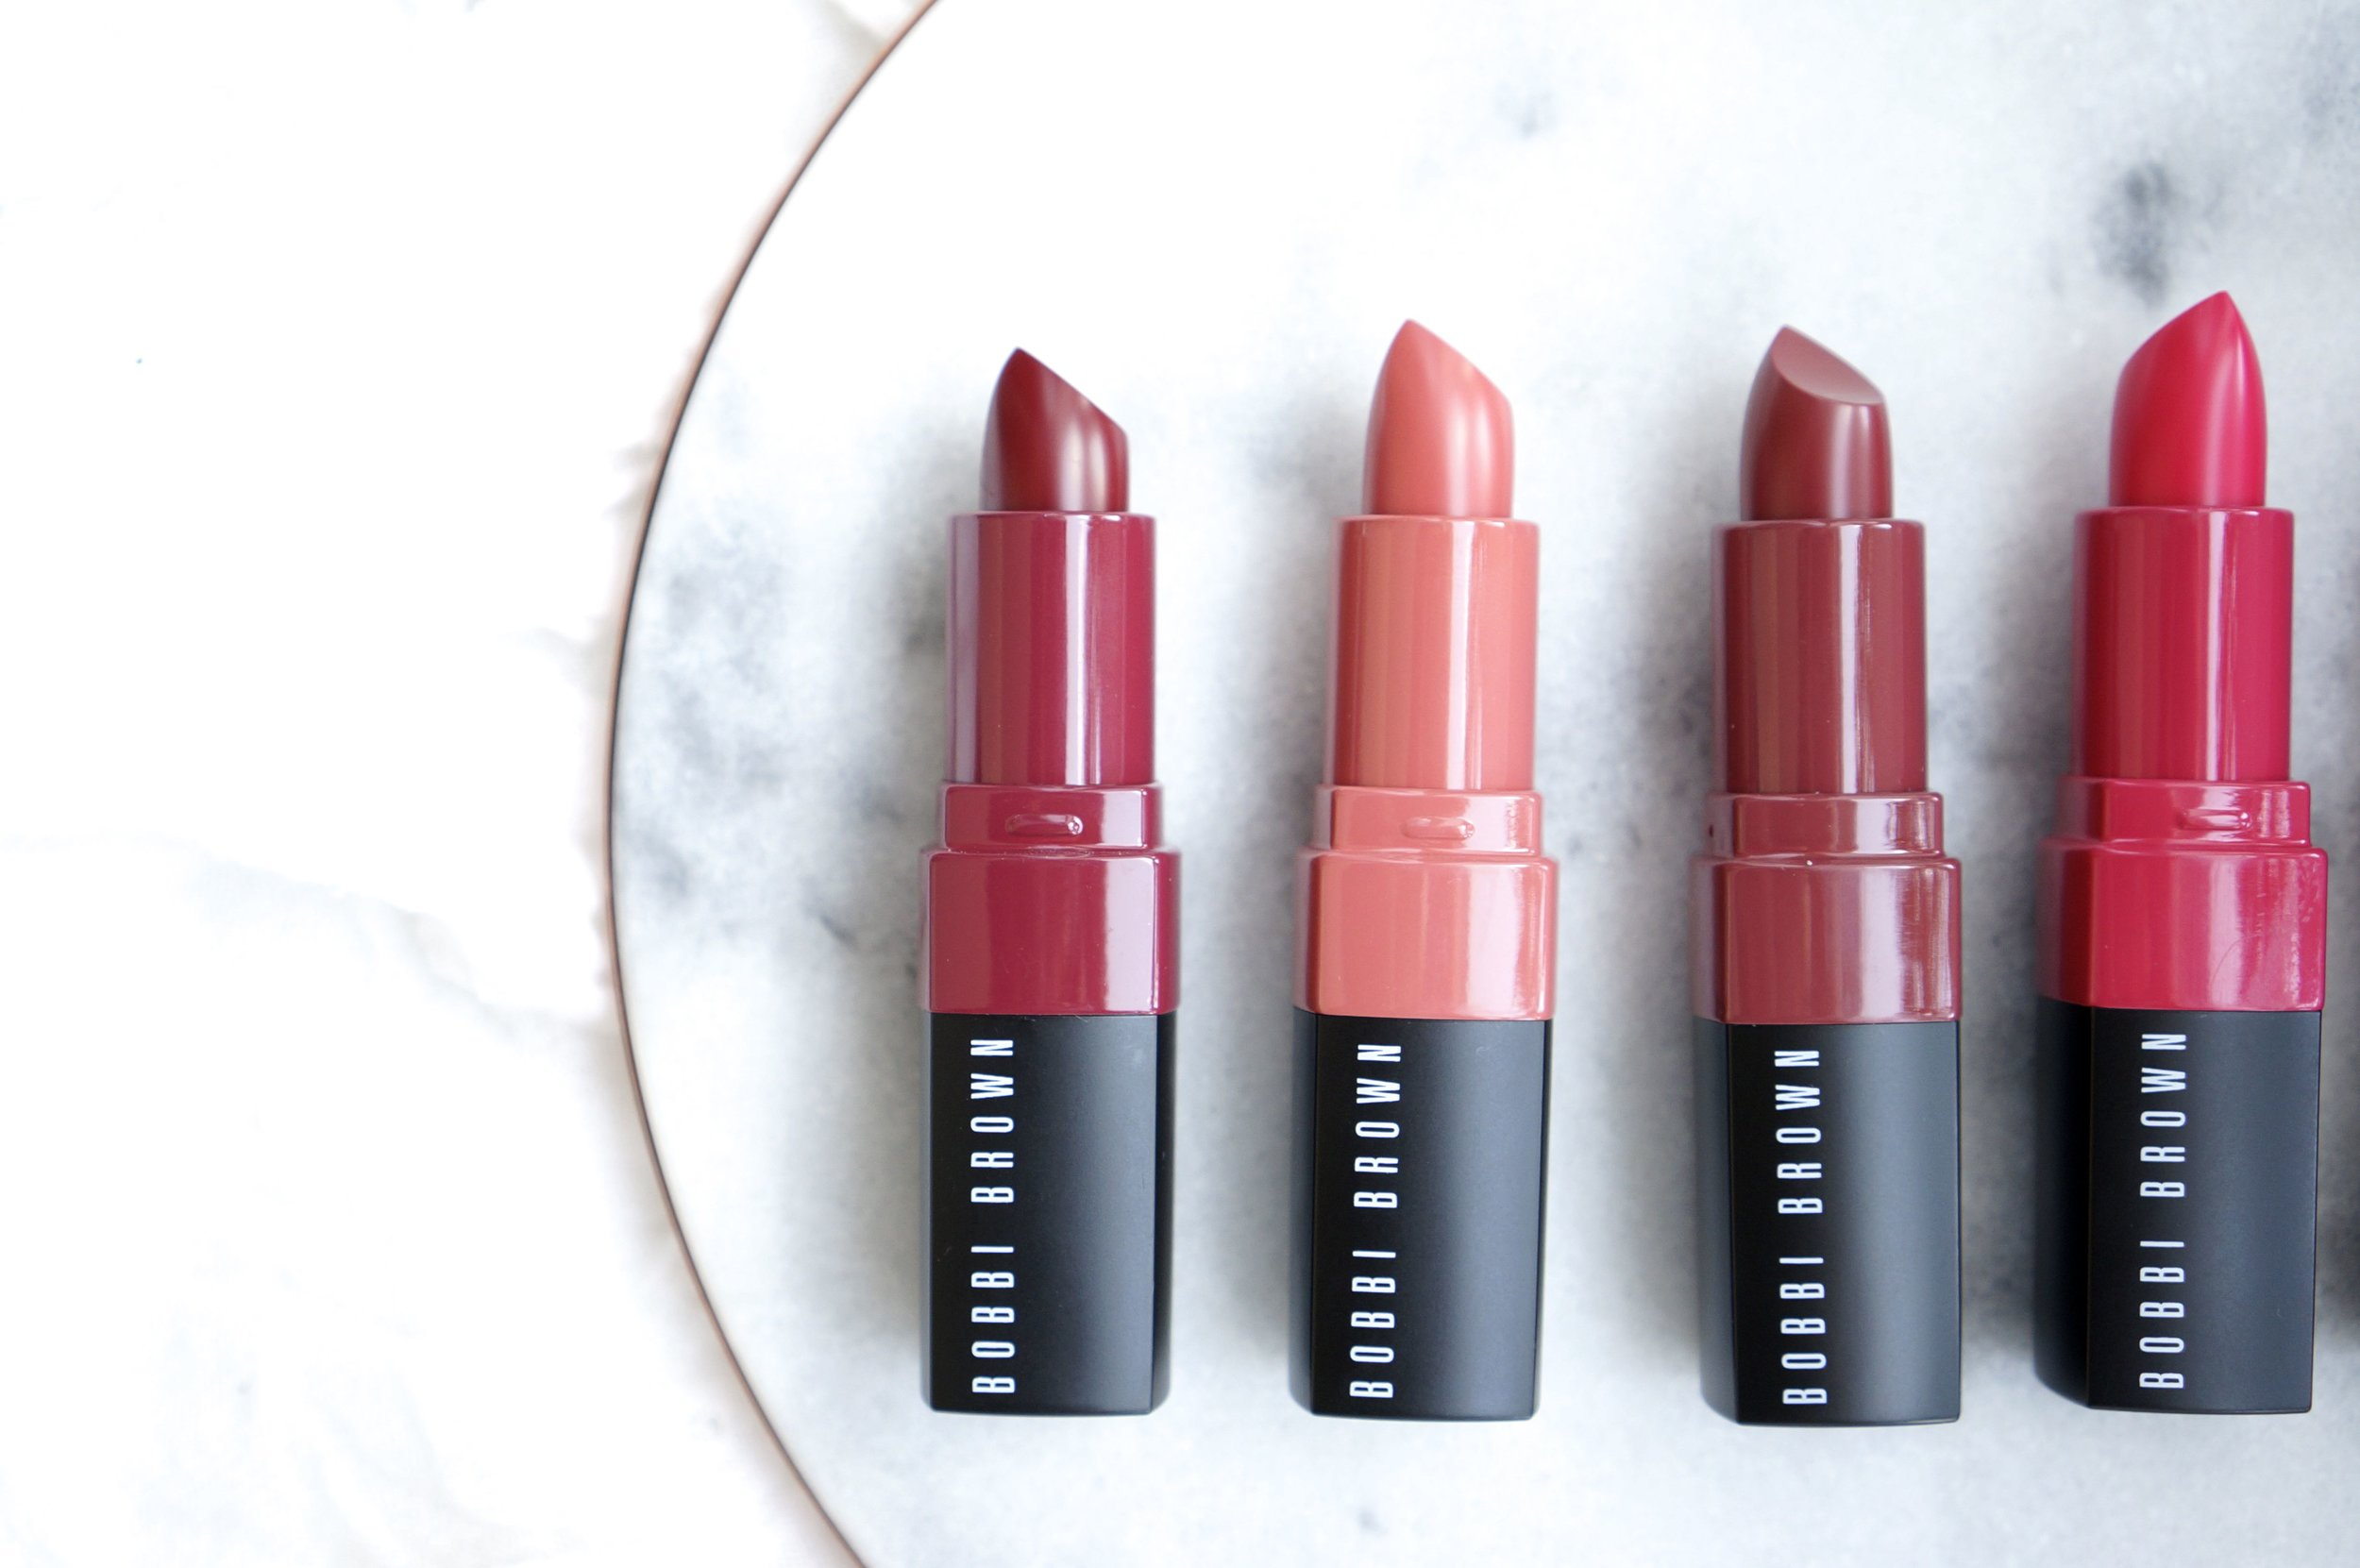 bobbi brown crushed lip color favorites